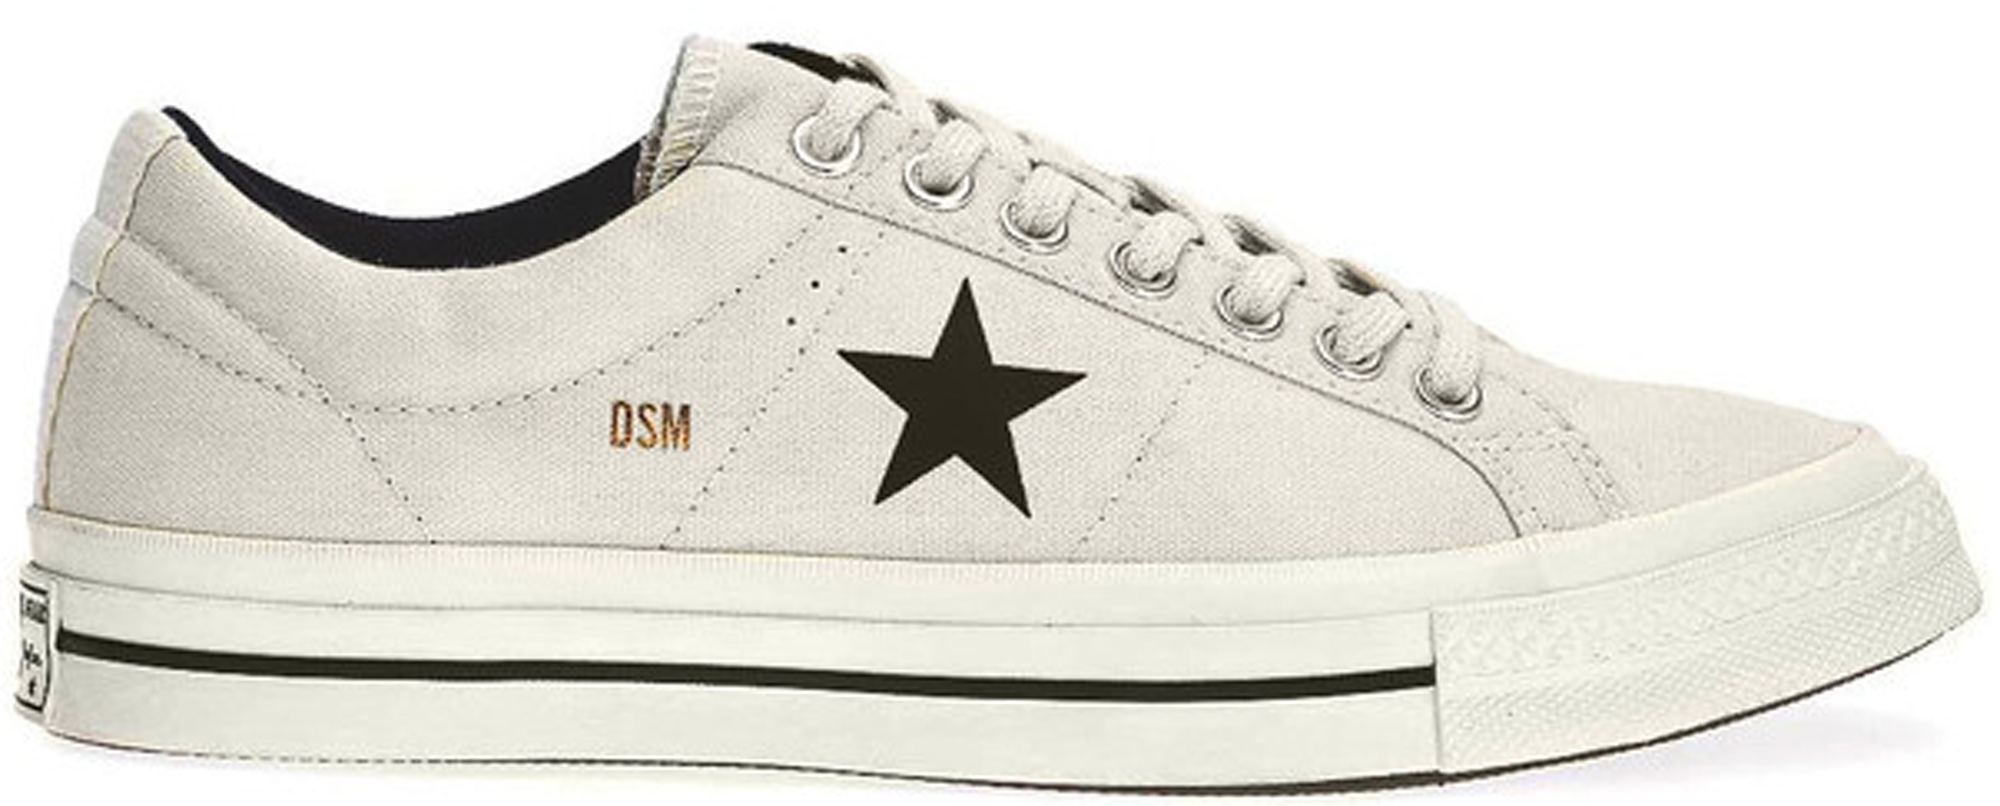 Converse One Star Canvas Ox Dover